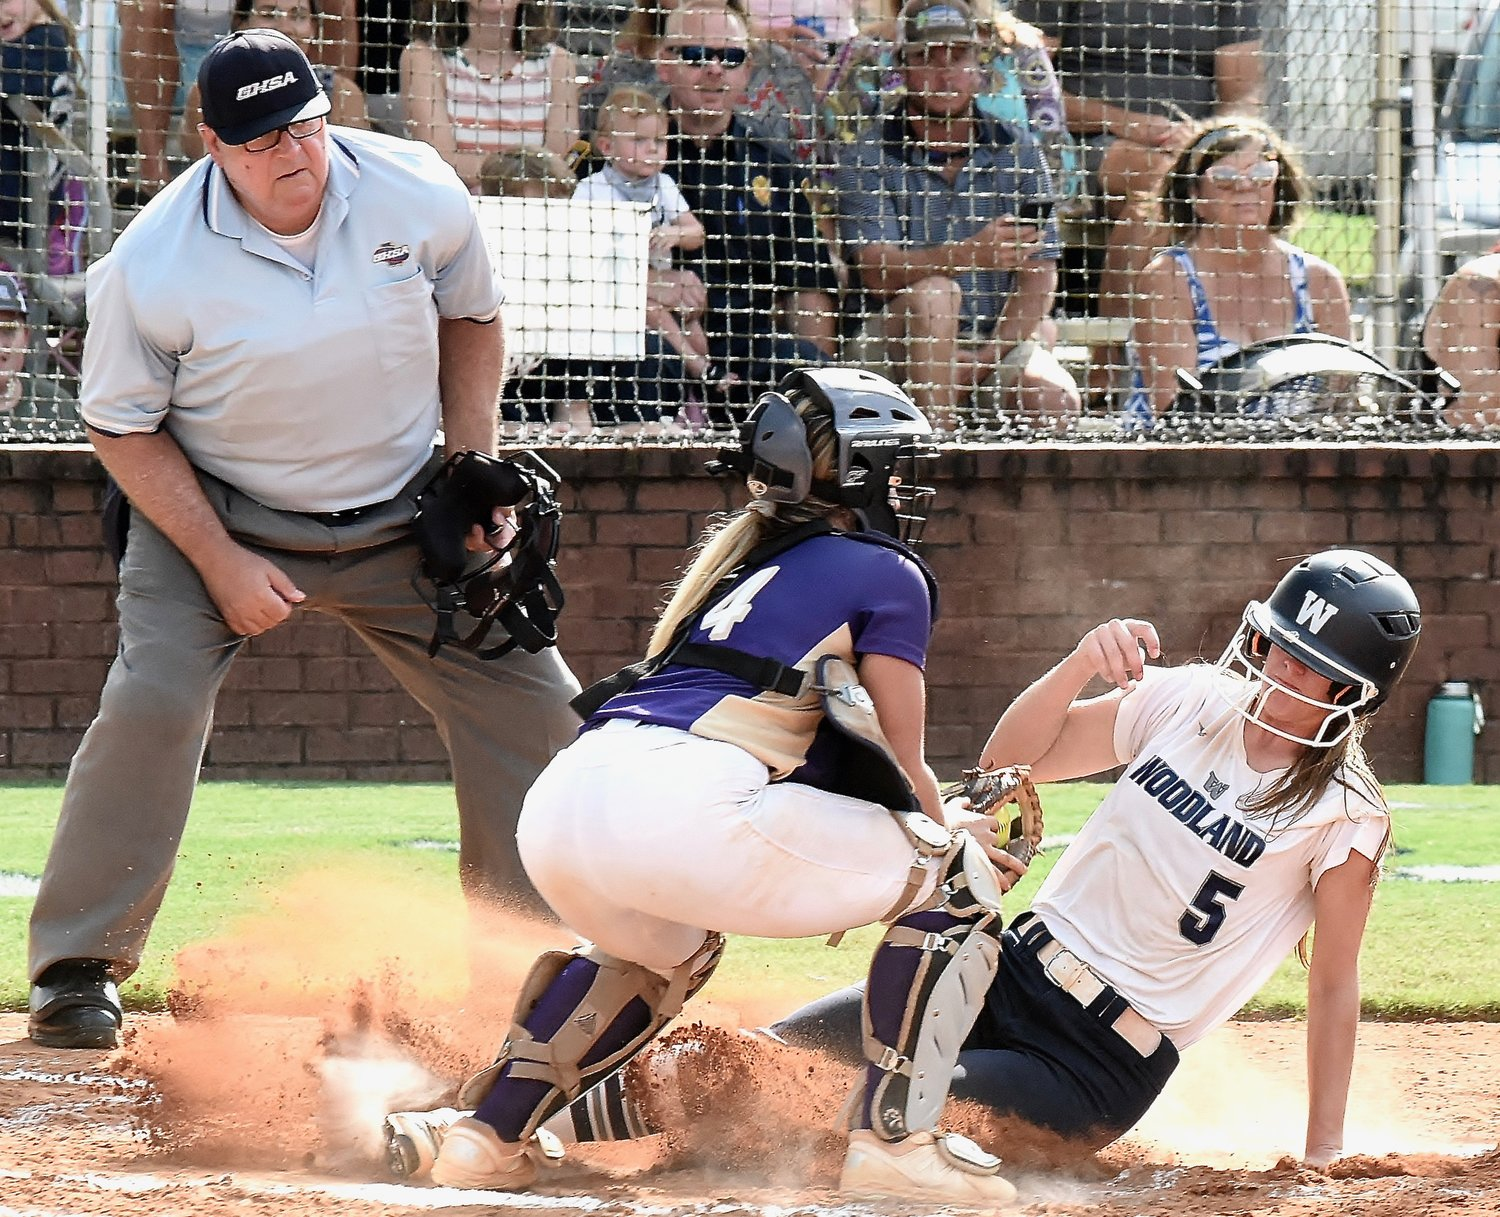 Woodland senior Morgan Cooper scores ahead of a tag from Cartersville senior Maggie Pruitt during Game 1 of Tuesday's doubleheader. Cooper went 3-for-5 with a home run, two walks, two RBIs and three runs scored.